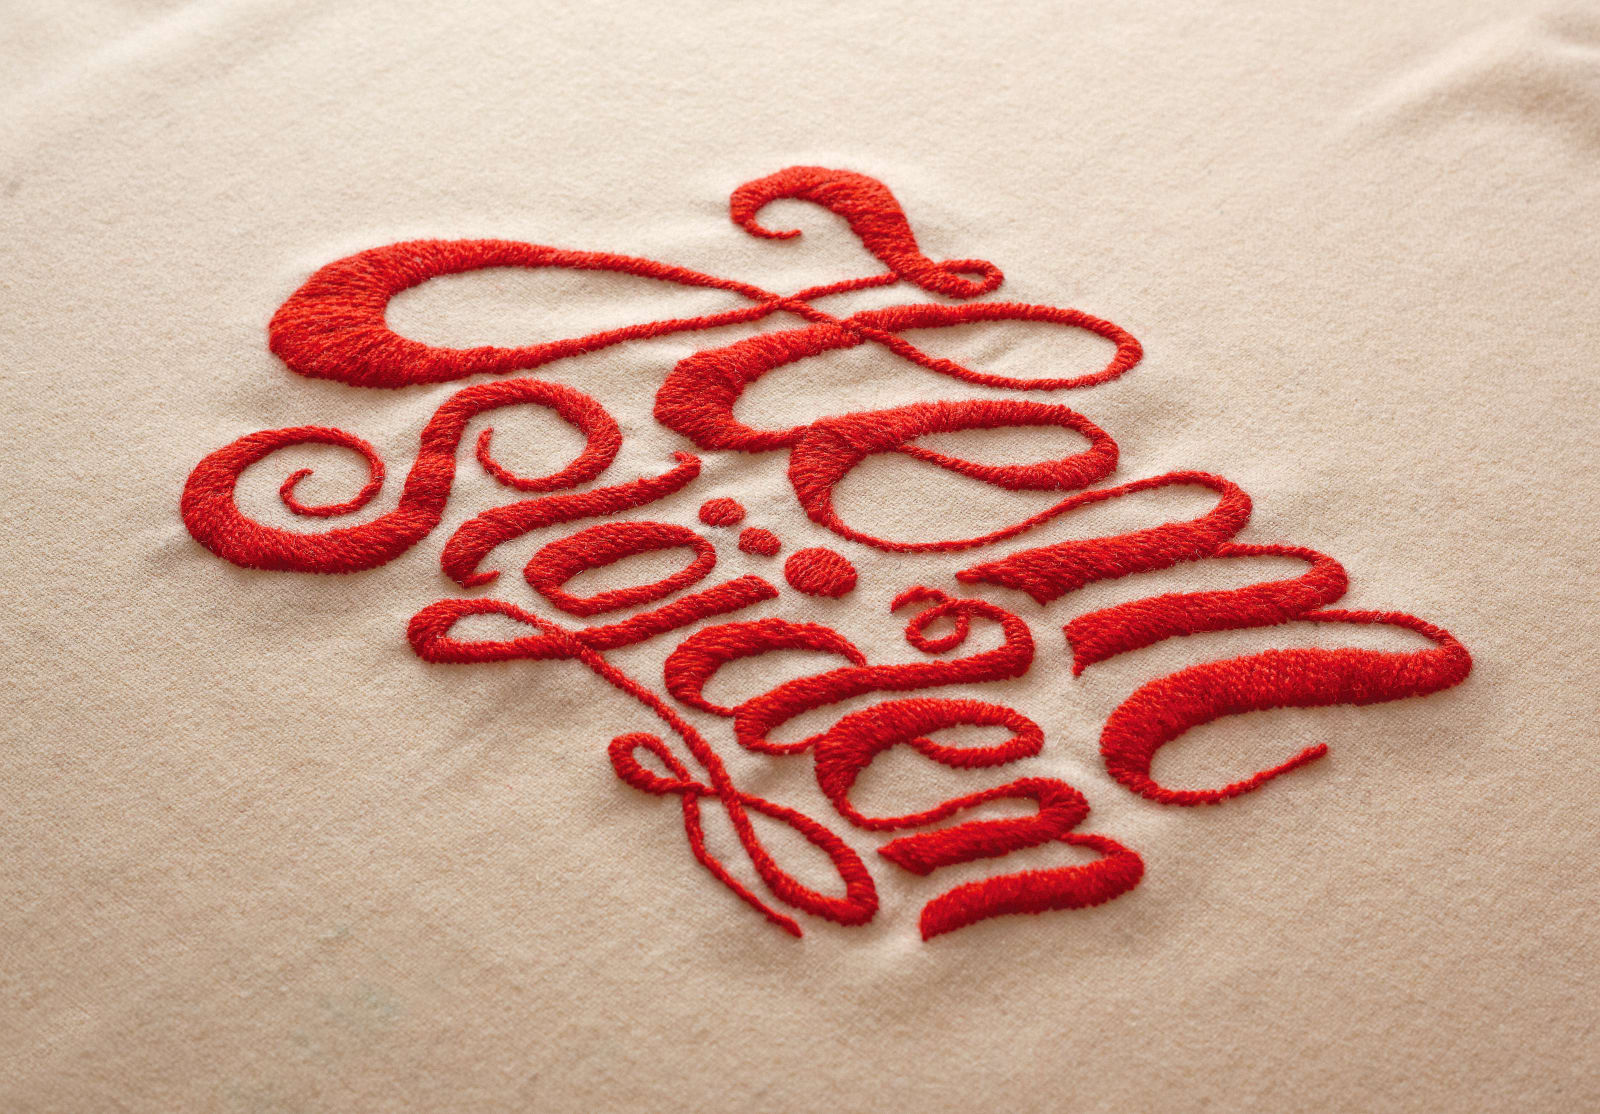 Liljevalchs: Hemslöjden — Exhibition identity - complete with embroided typography - for the Handicraft exhibition